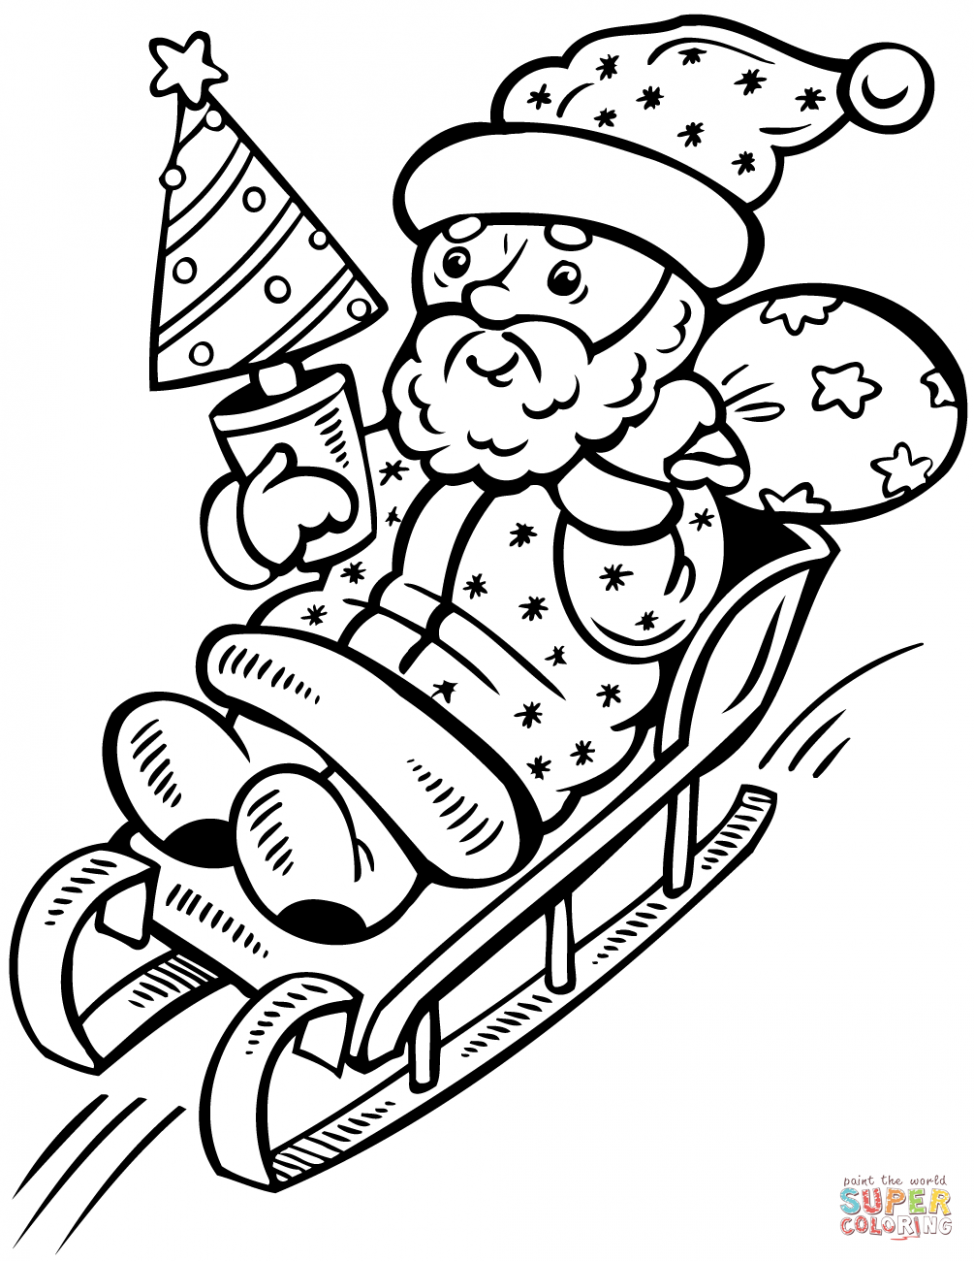 Santa Claus on Sleigh with Christmas Tree coloring page | Free ...